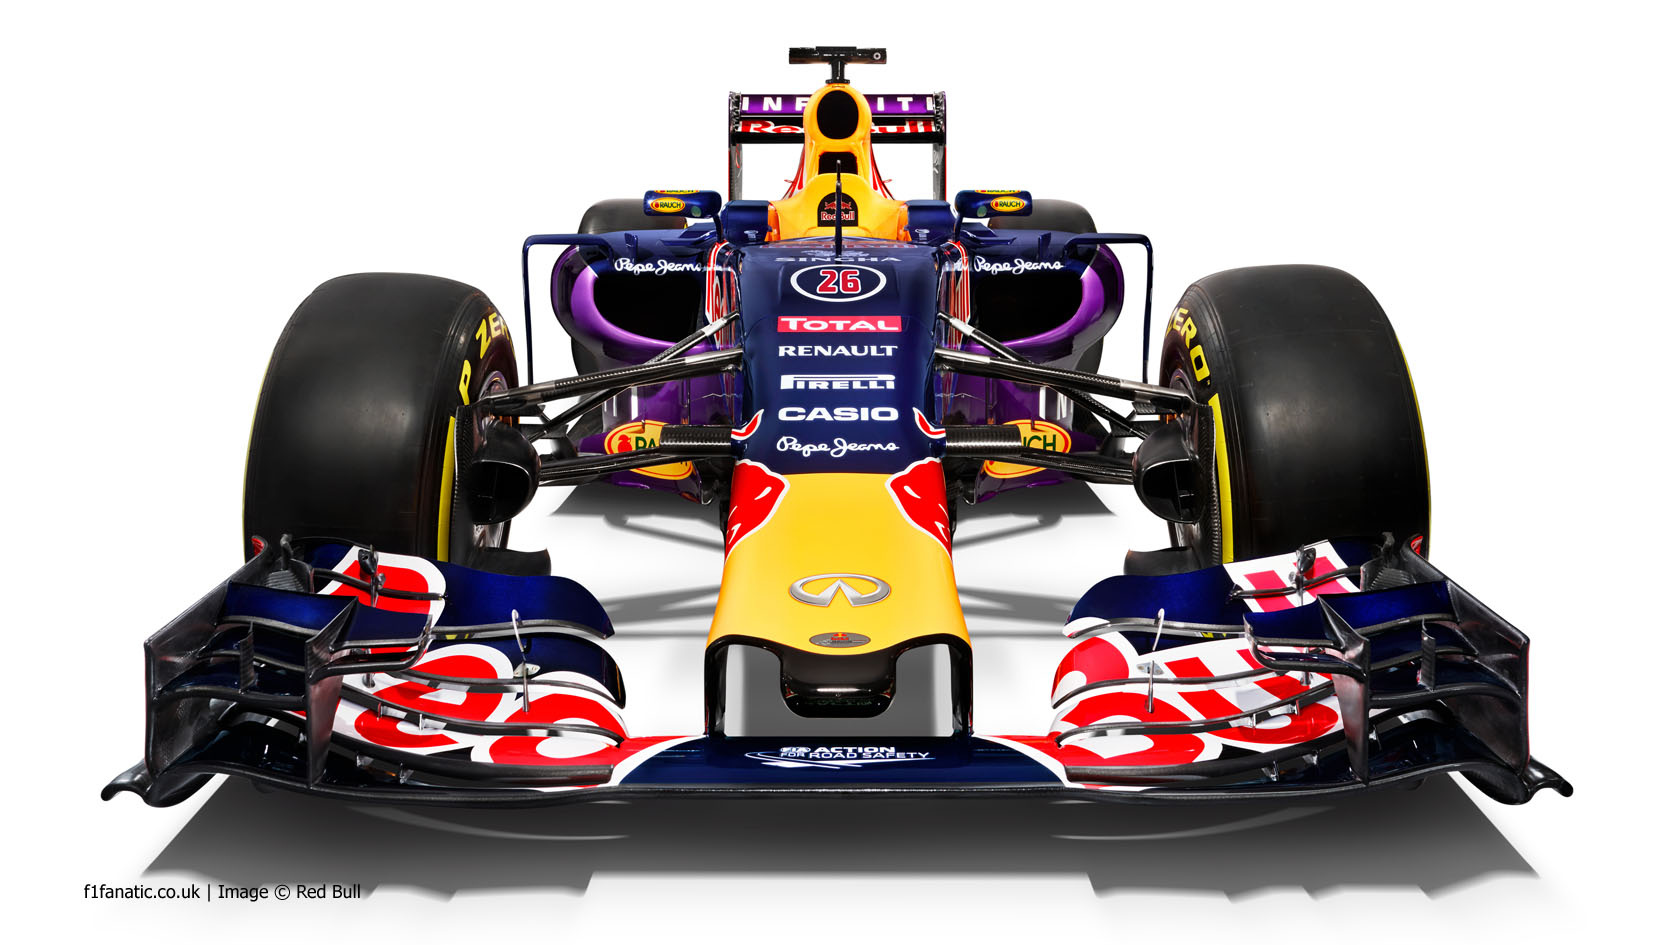 2015 f1 rb11 autoblog - photo #17